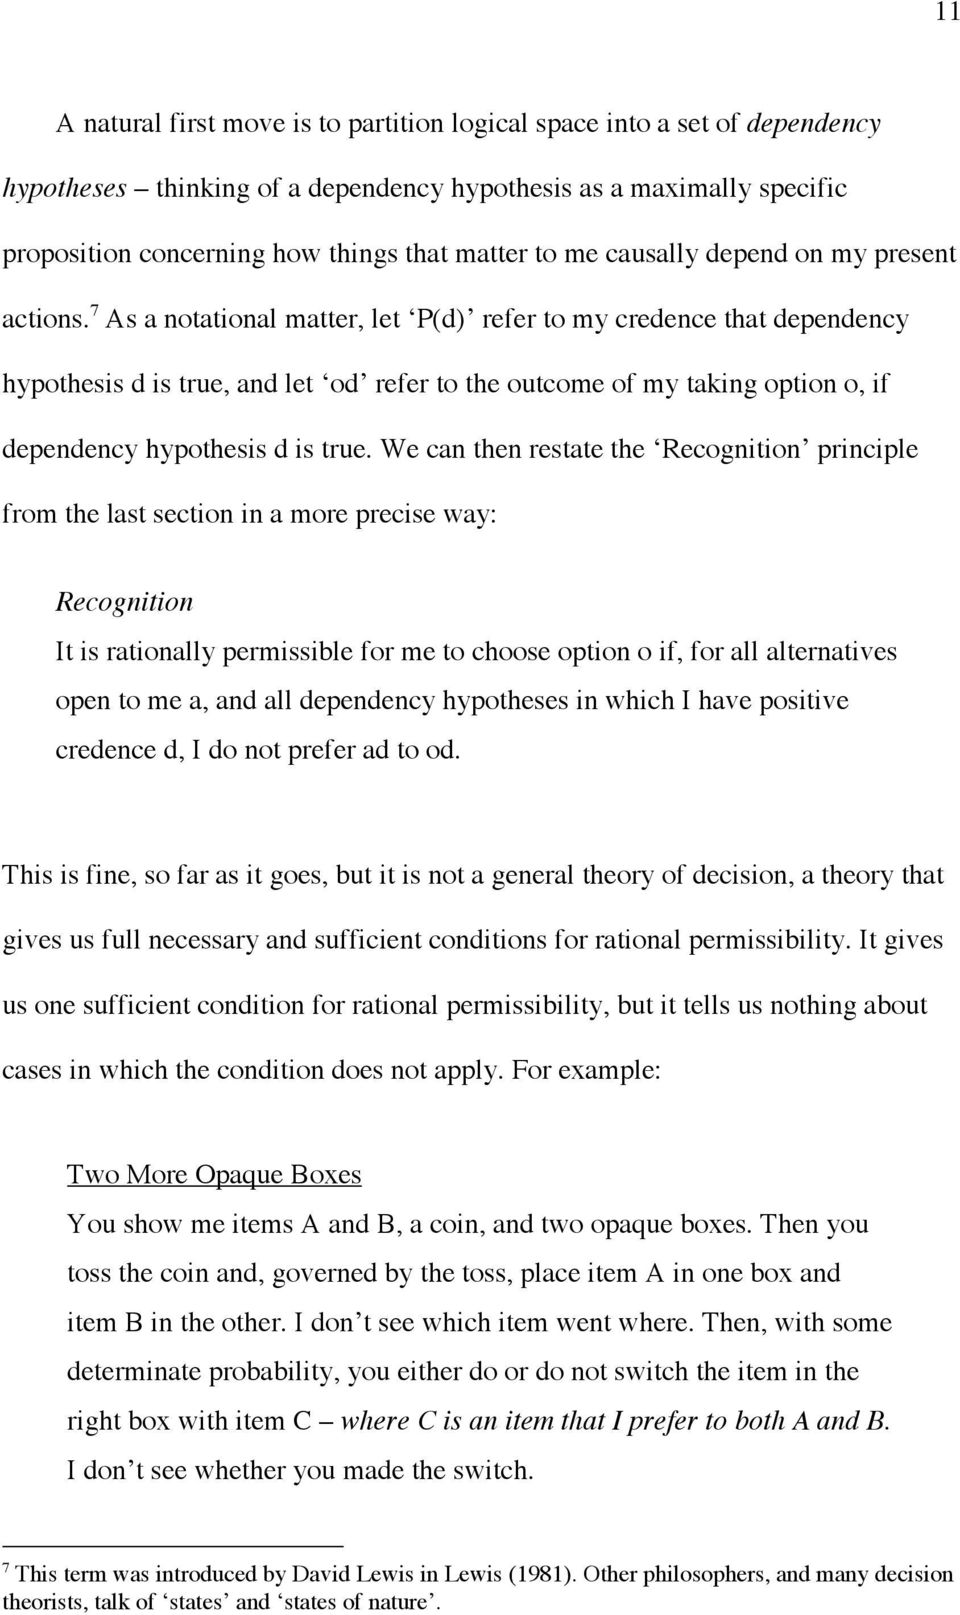 7 As a notational matter, let P(d) refer to my credence that dependency hypothesis d is true, and let od refer to the outcome of my taking option o, if dependency hypothesis d is true.